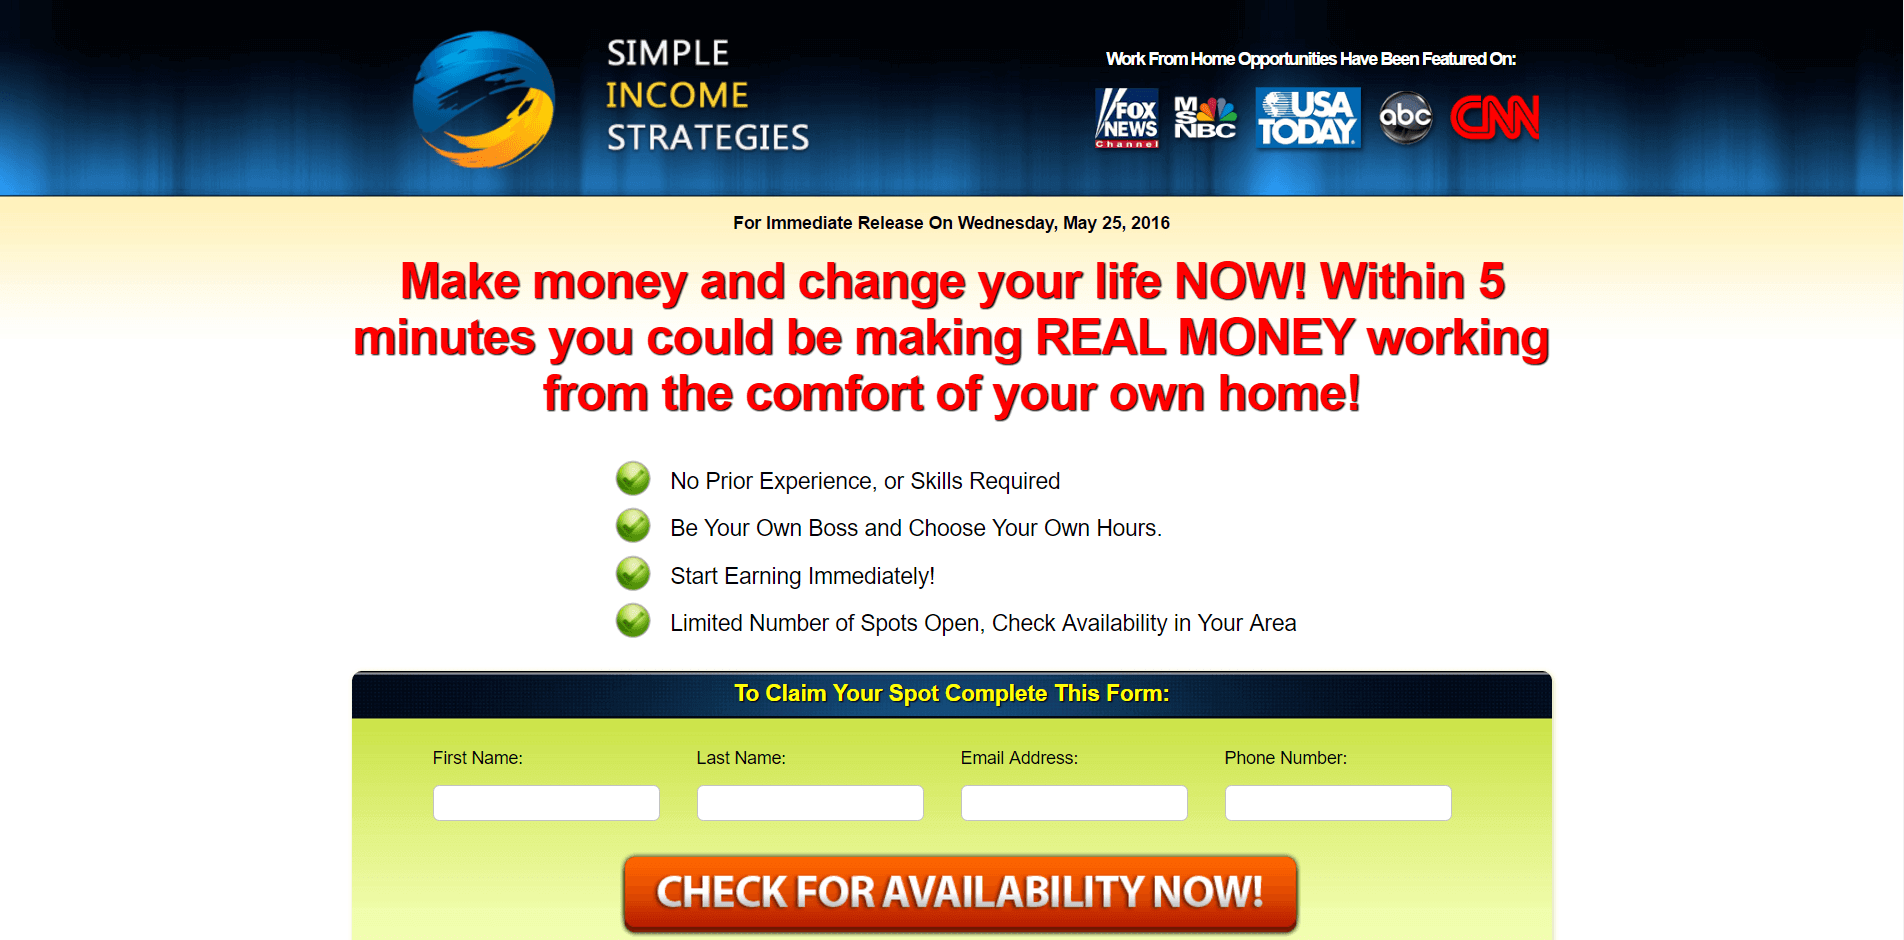 Is Simple Income Strategies a Scam